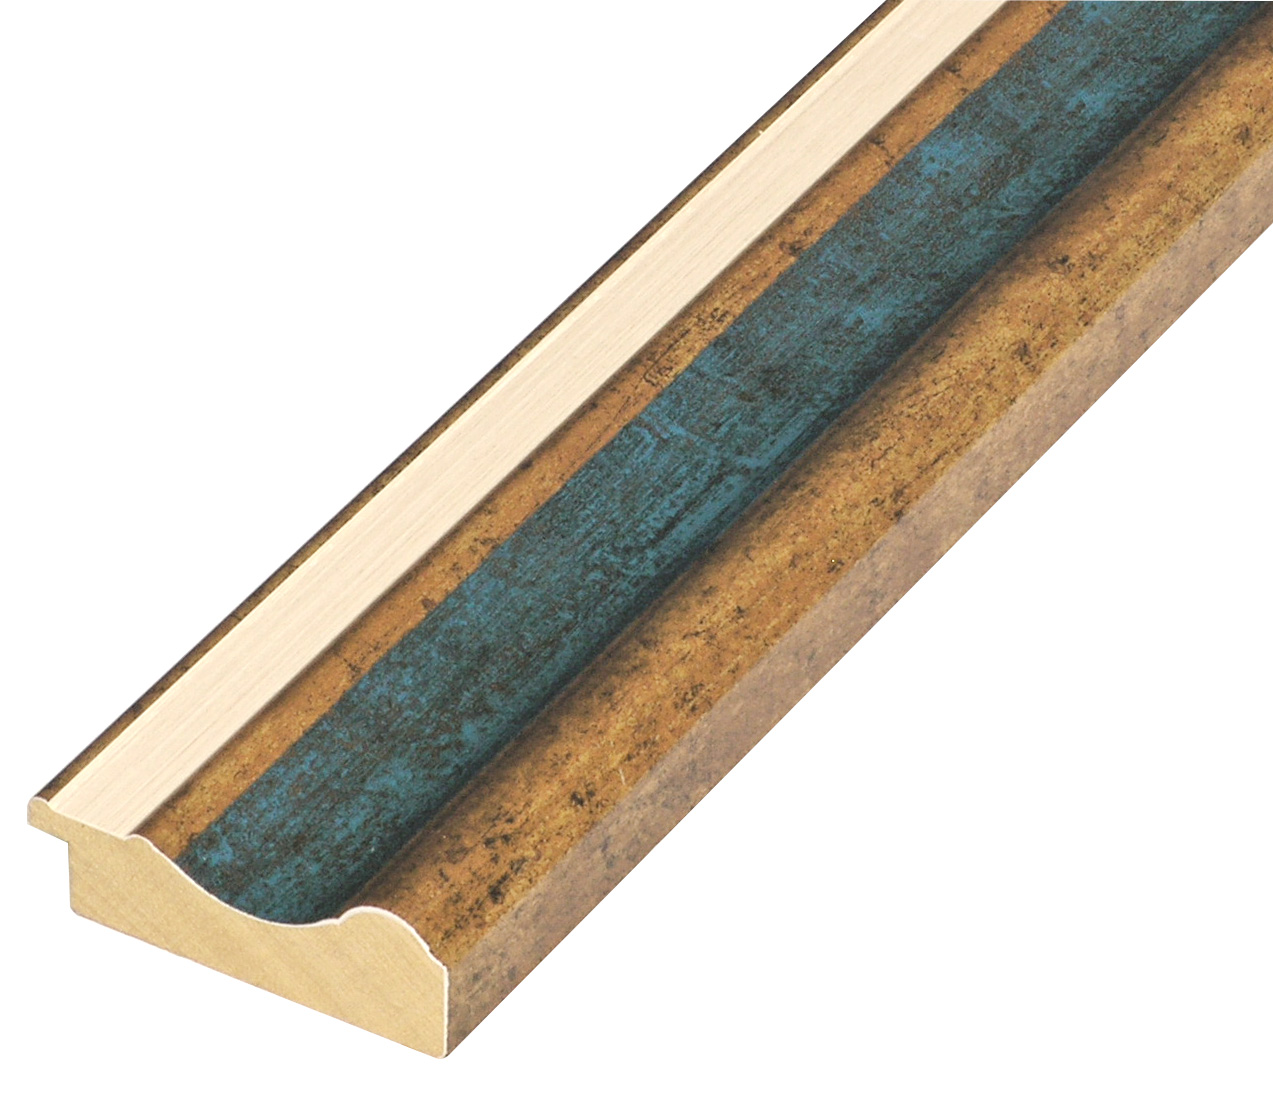 Moulding ayous - width 61mm height 20 - Gold, blue band